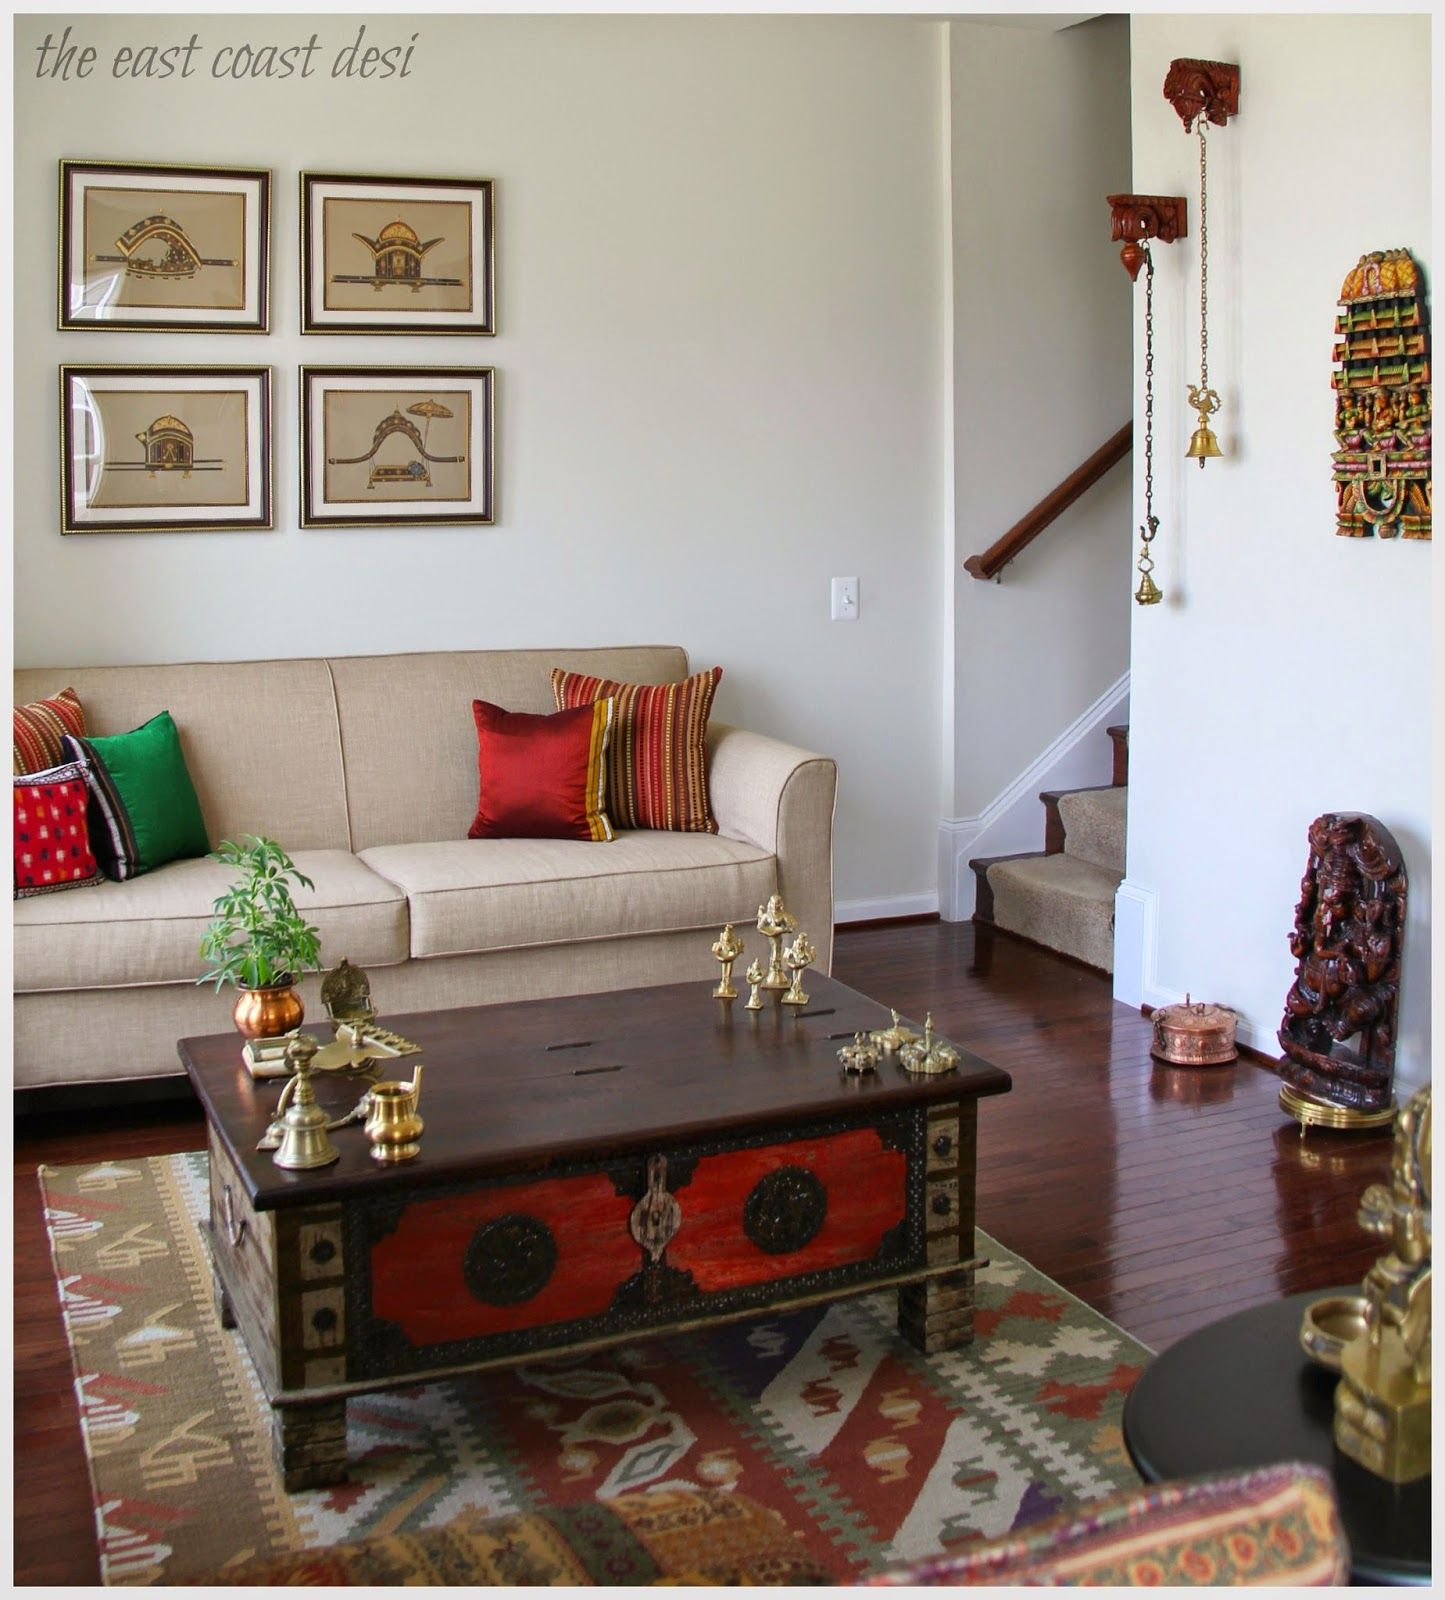 Indian Living Room Ideas The East Coast Desi Home Decor Home Decor Pinterest